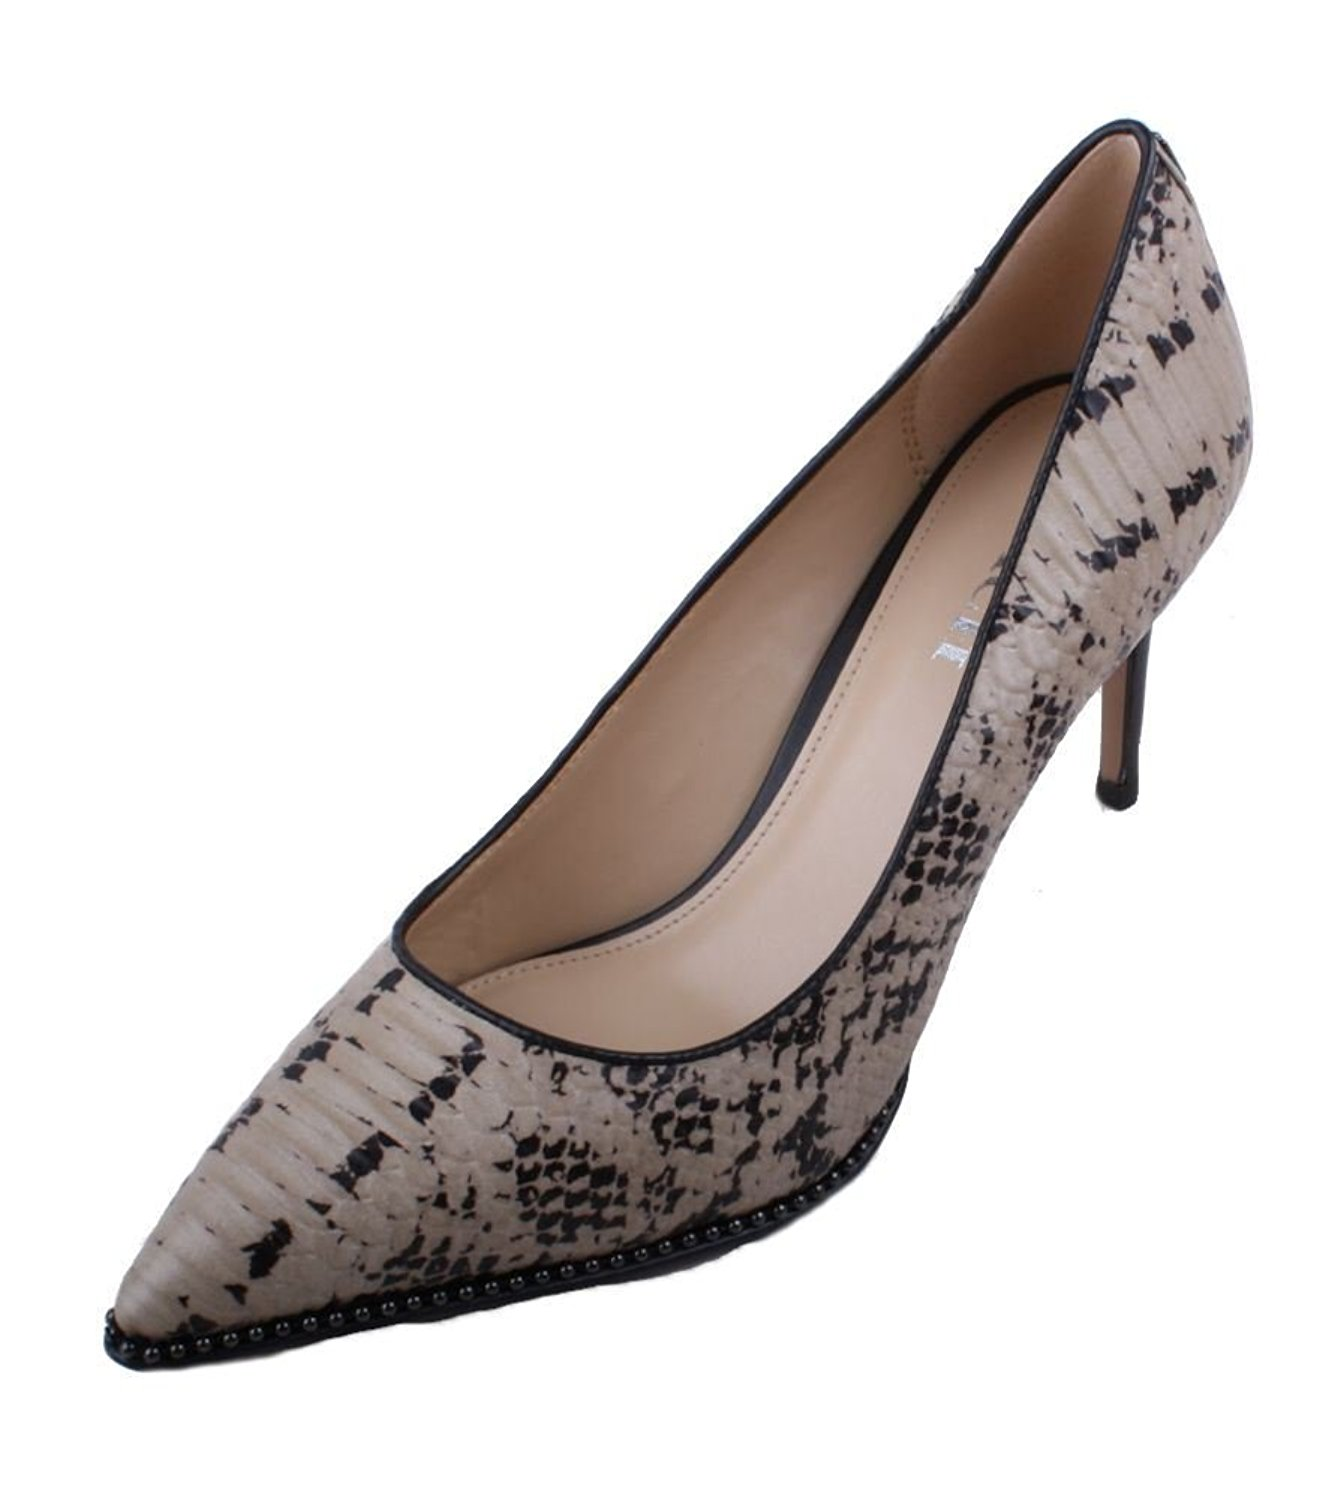 Coach Womens Vonna Leather Pointed Toe Classic Pumps